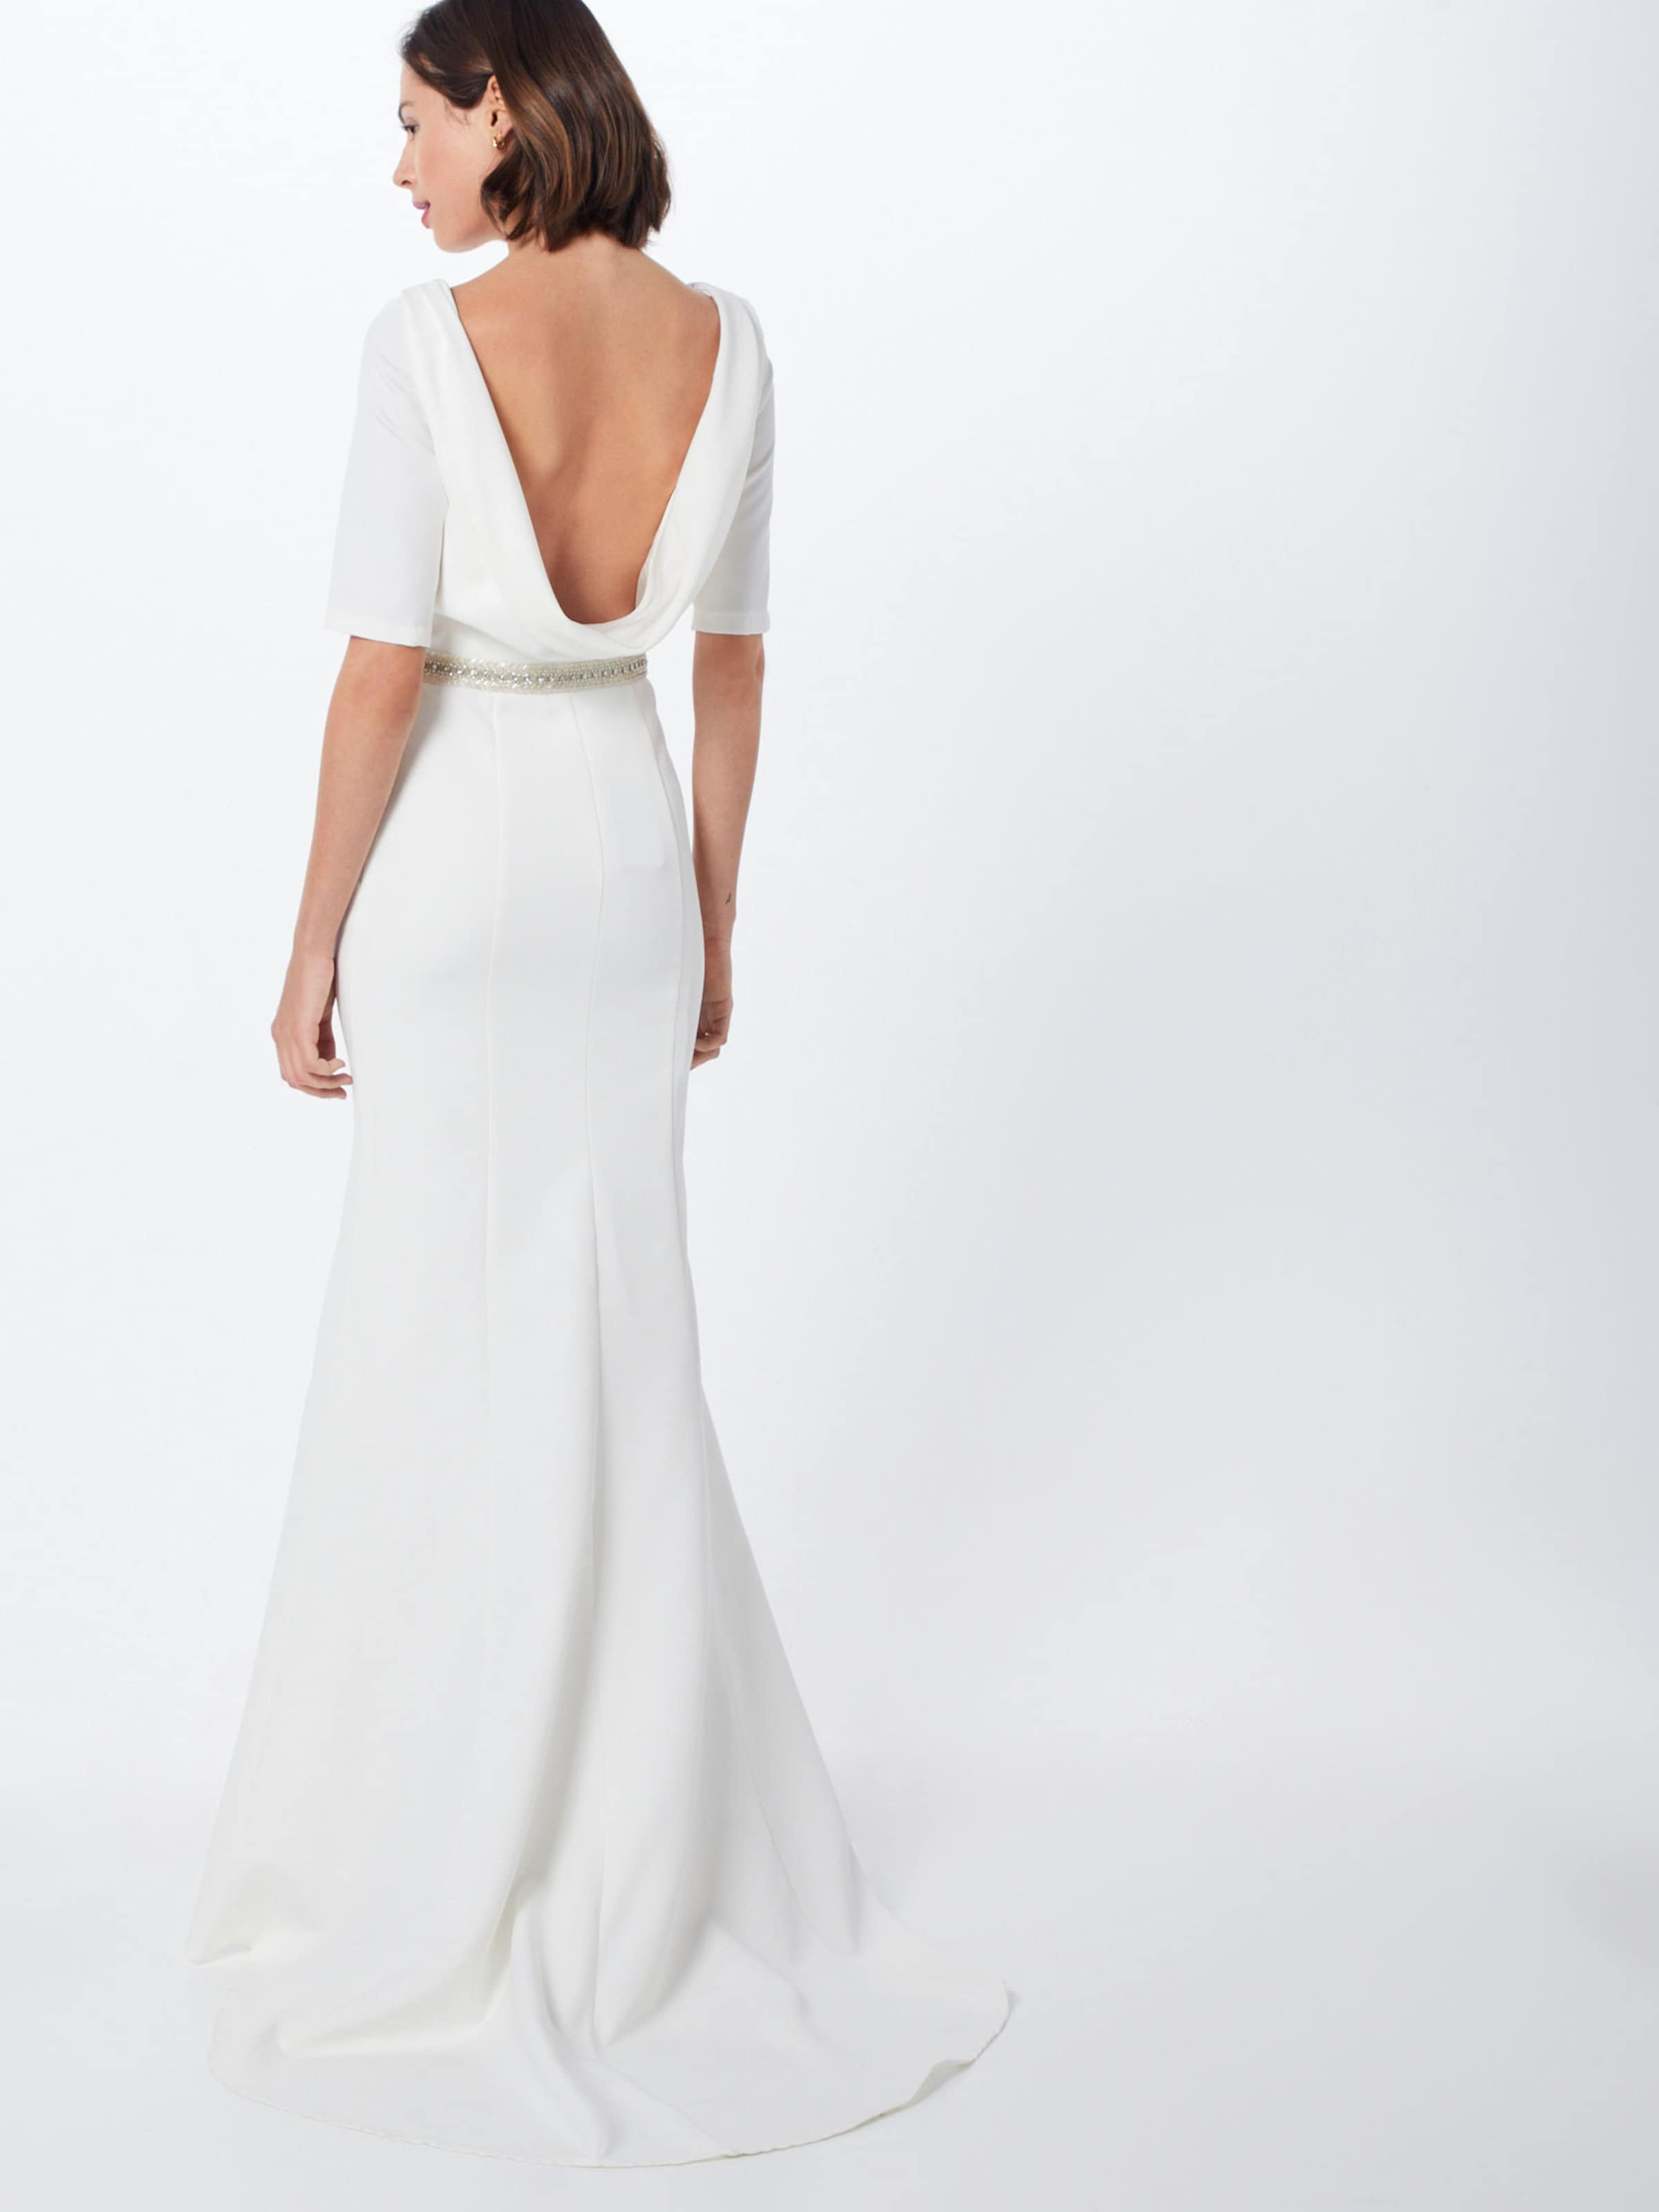 Kleid Bridal' 'chi Chi WeißOffwhite In London EHeWYb2D9I